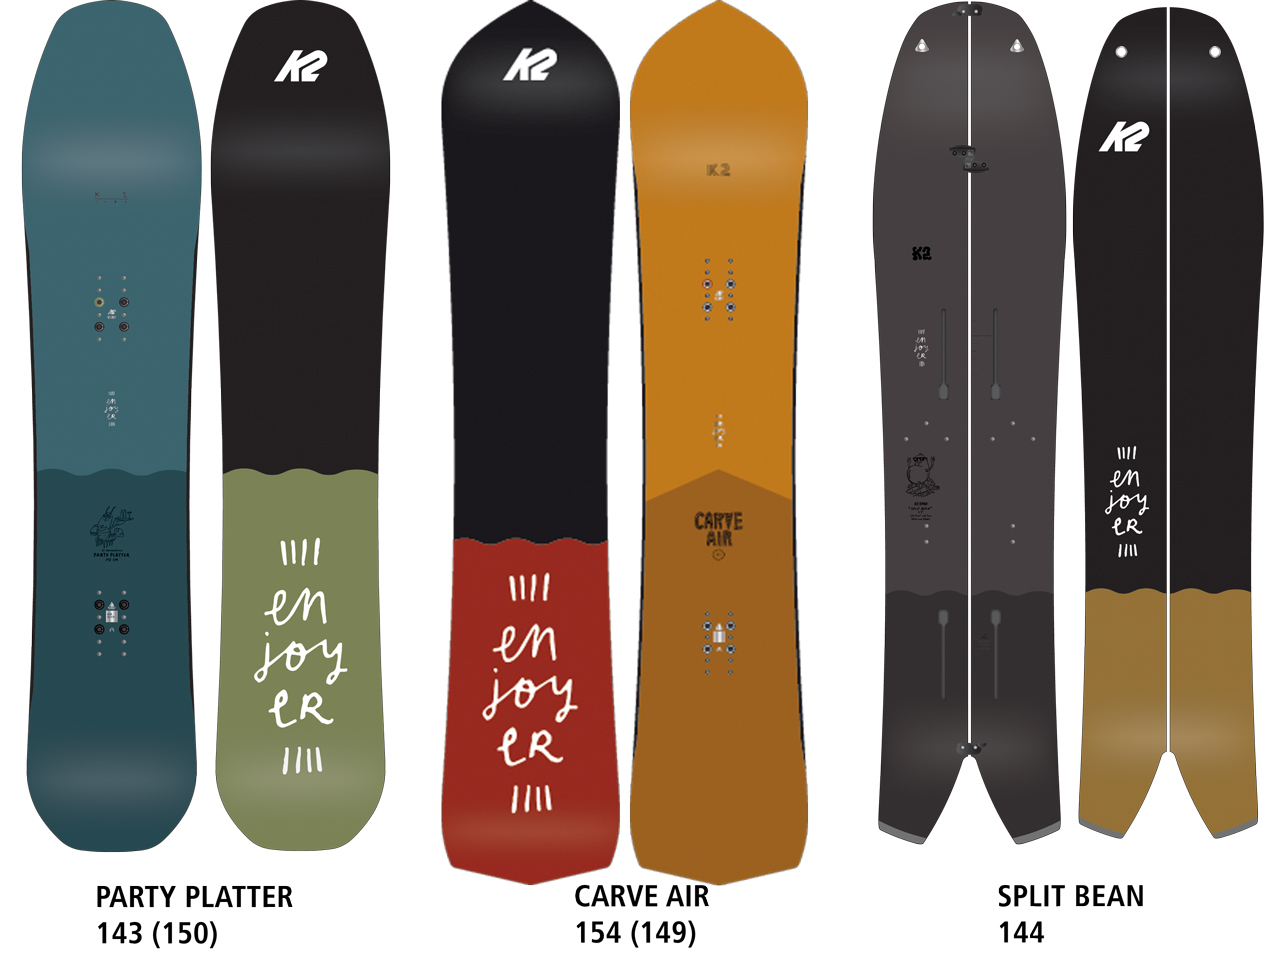 Party Platter, Carve Air und Split Bean aus der Enjoyers-Kollektion von K2 Snowboarding